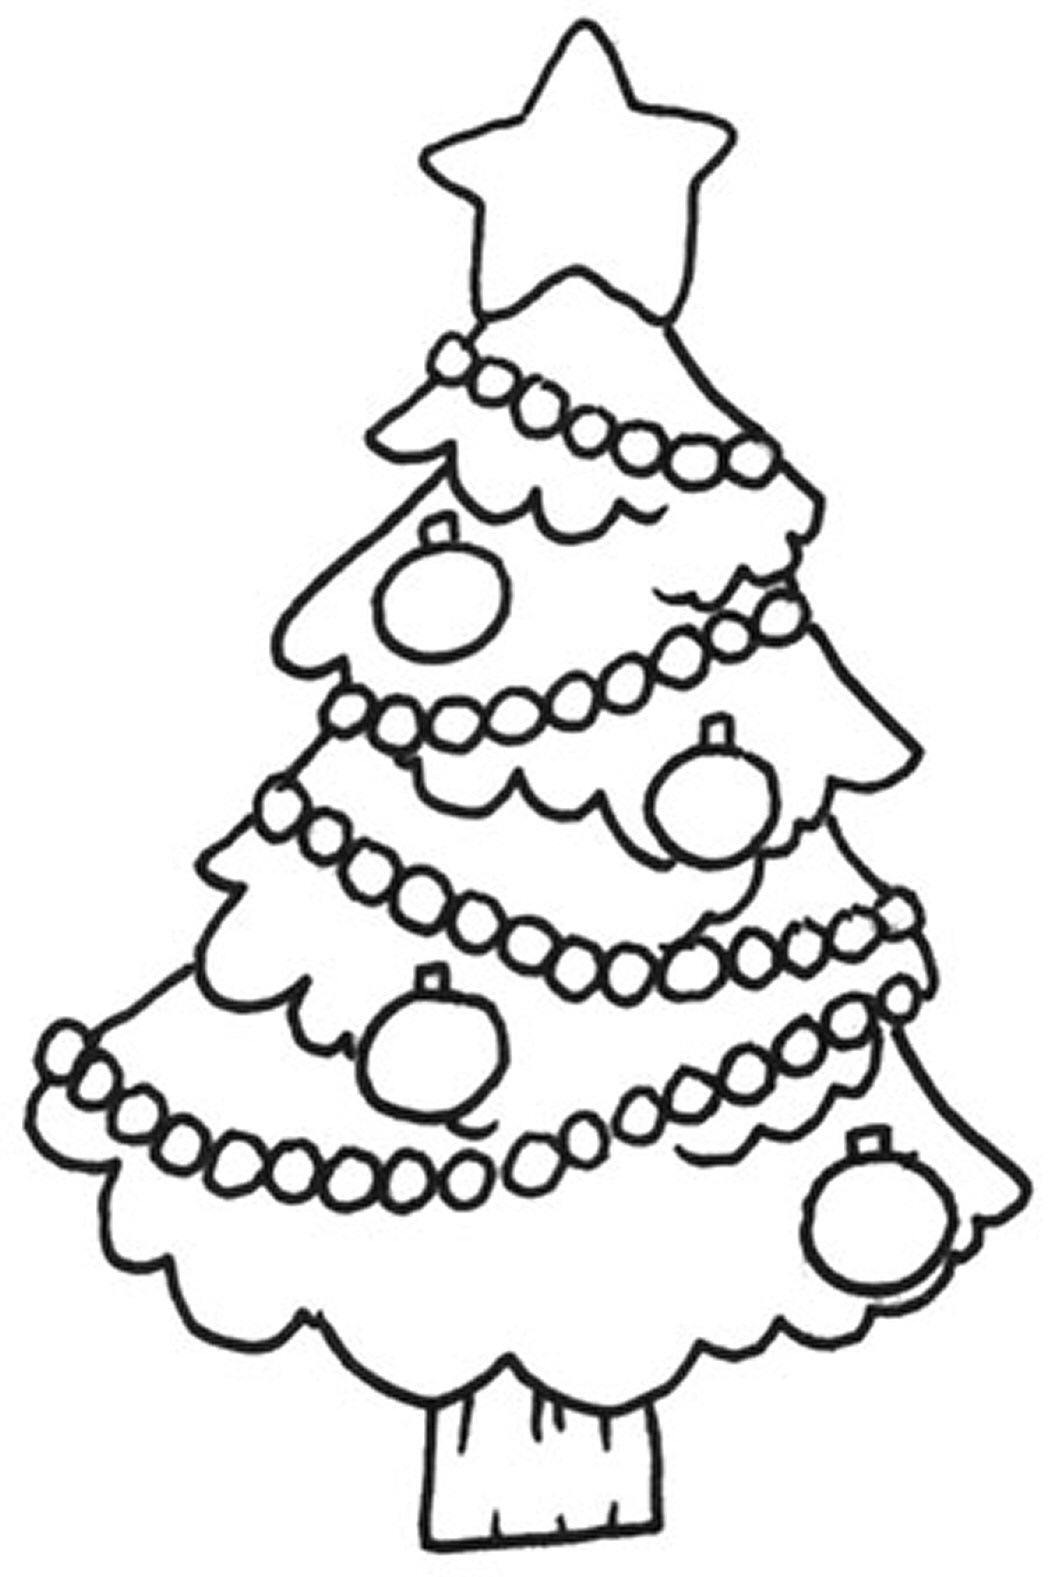 coloring pages christams - photo#5